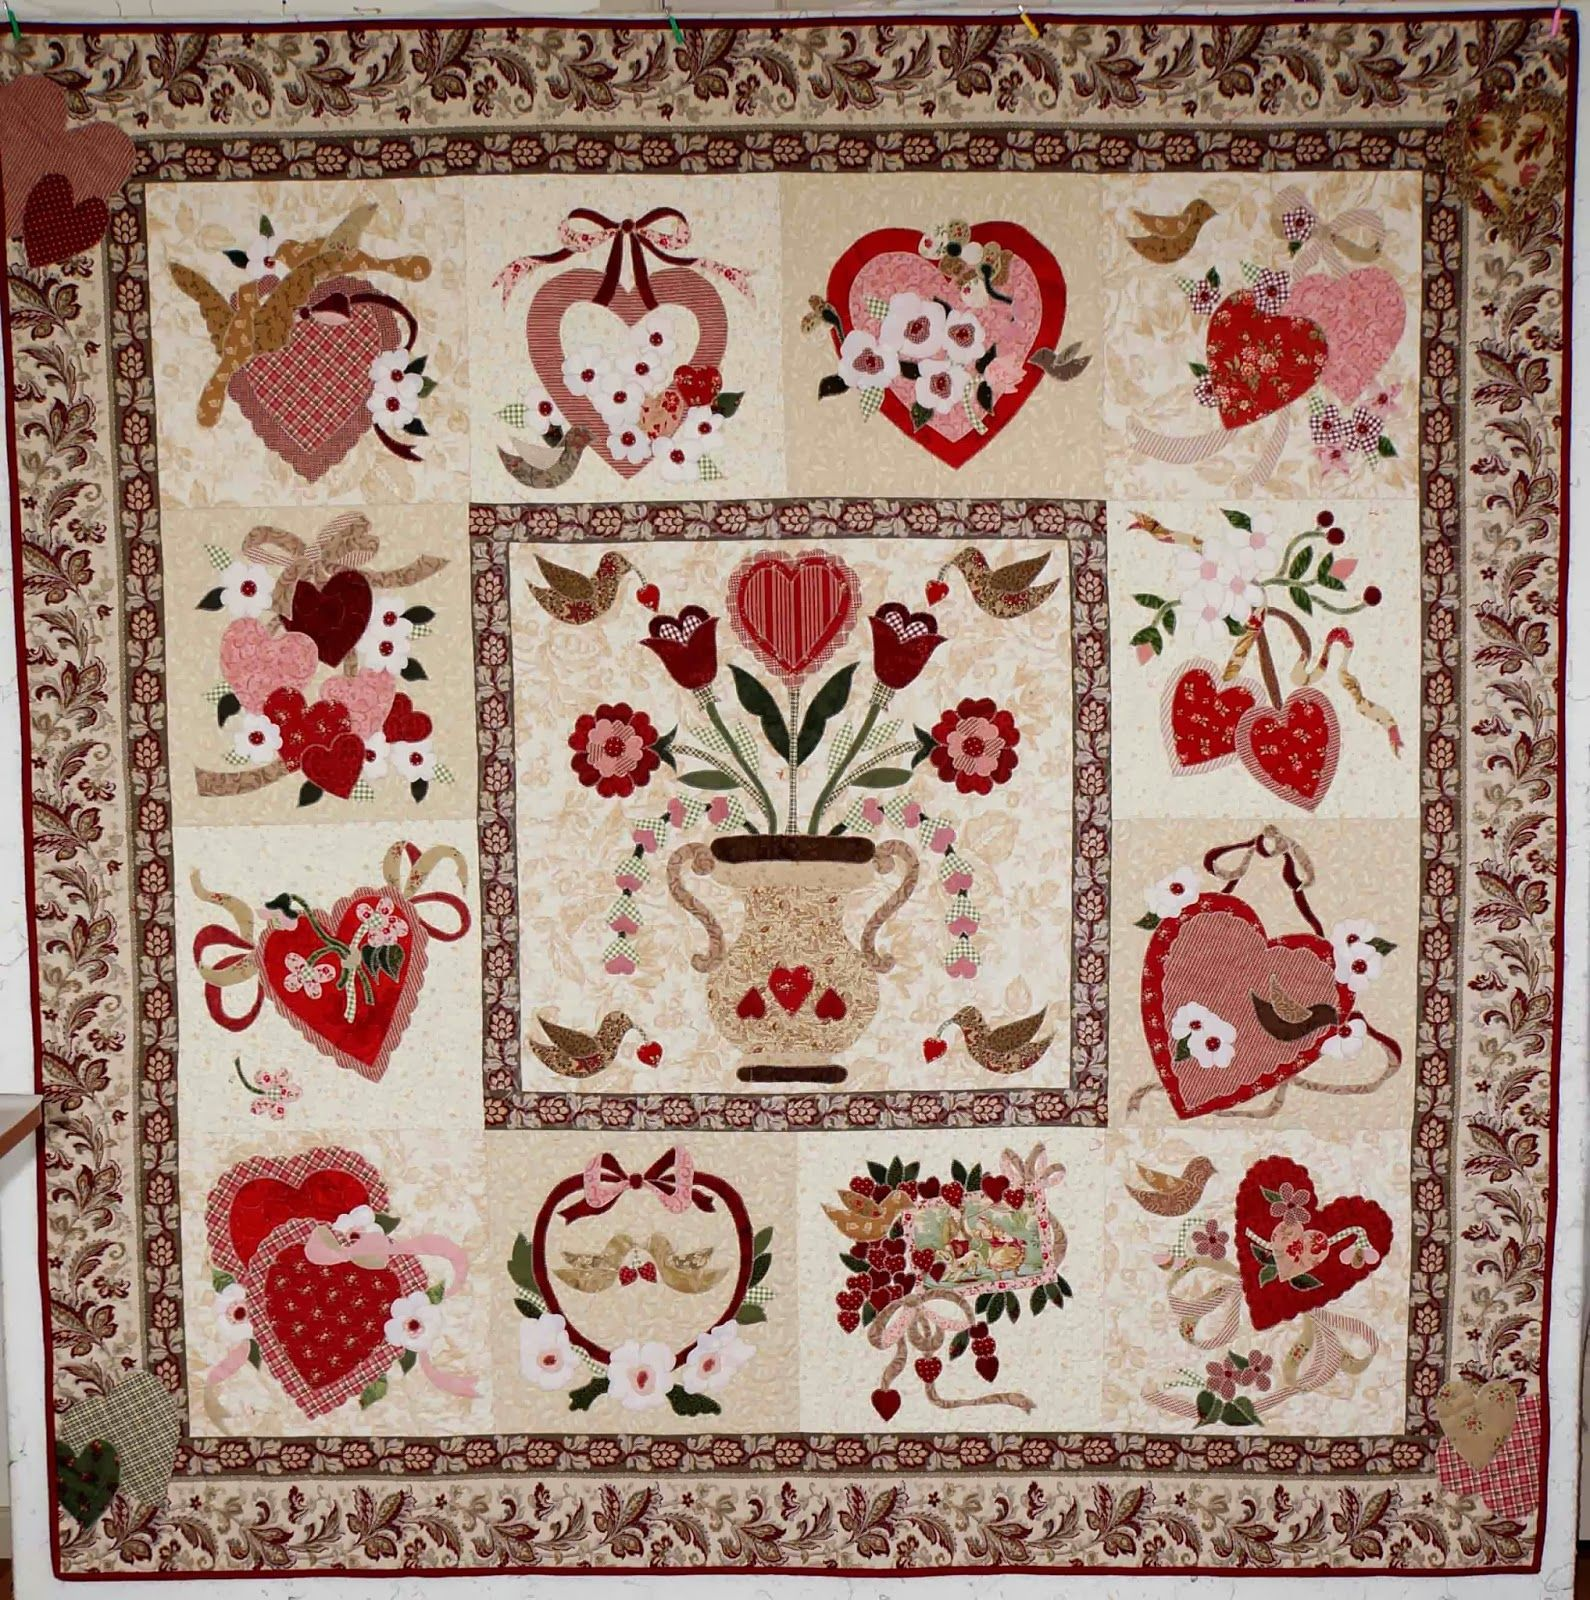 vintage valentines quilt pattern | It's called Vintage Valentine ... : valentine quilt patterns - Adamdwight.com